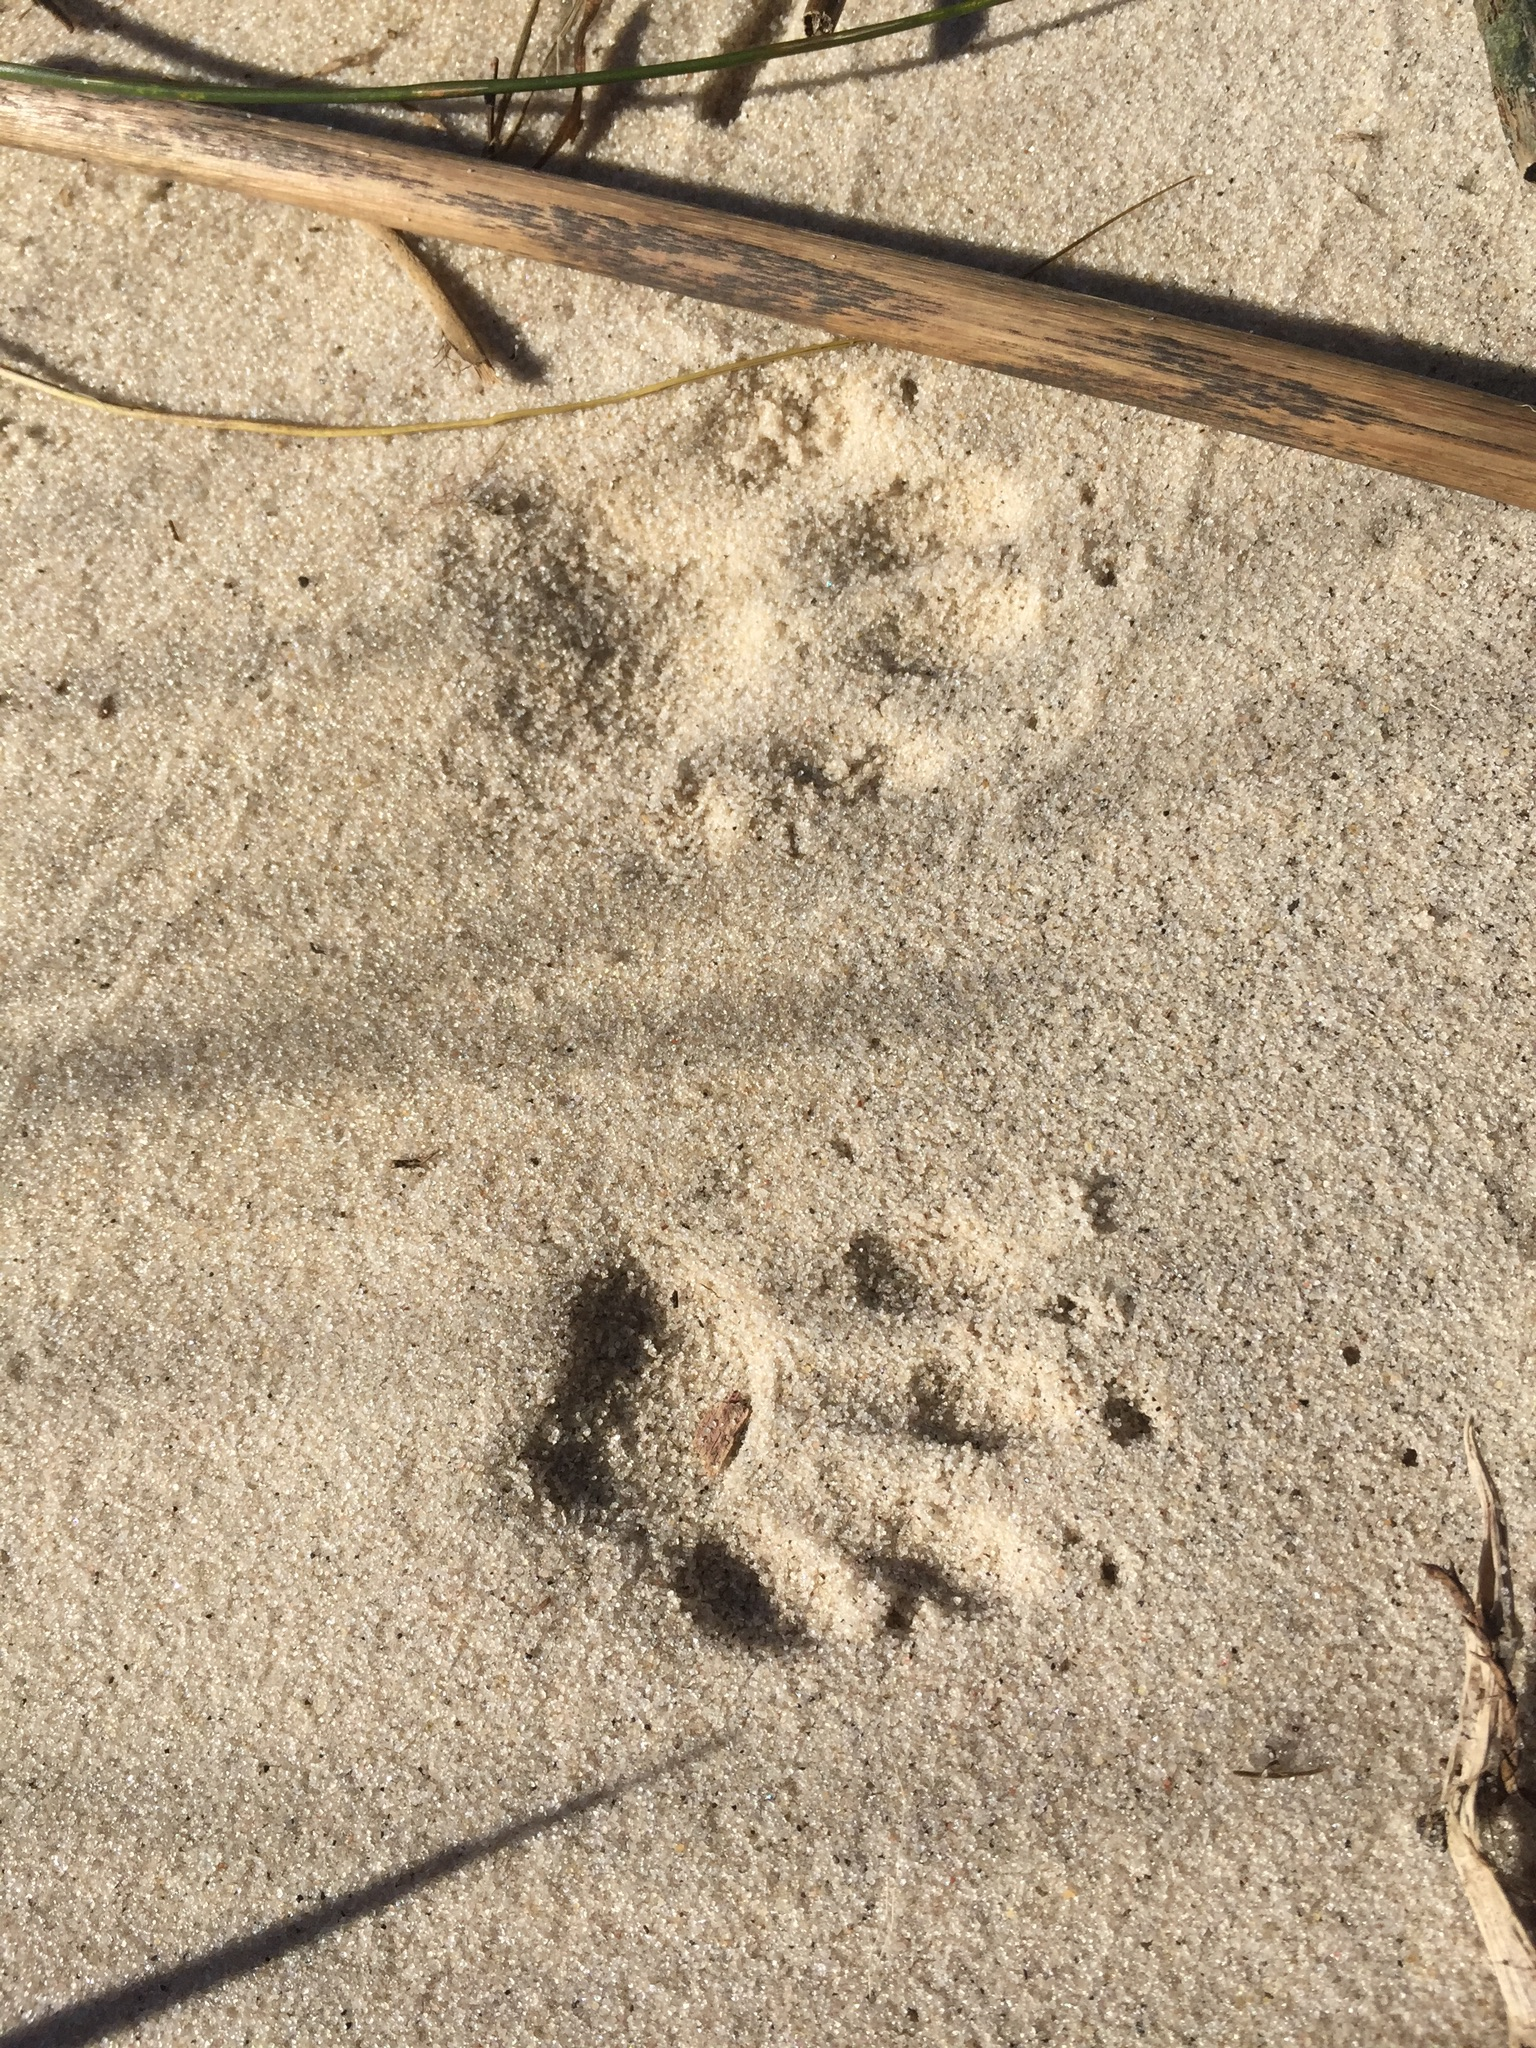 Who left these tracks by the river?